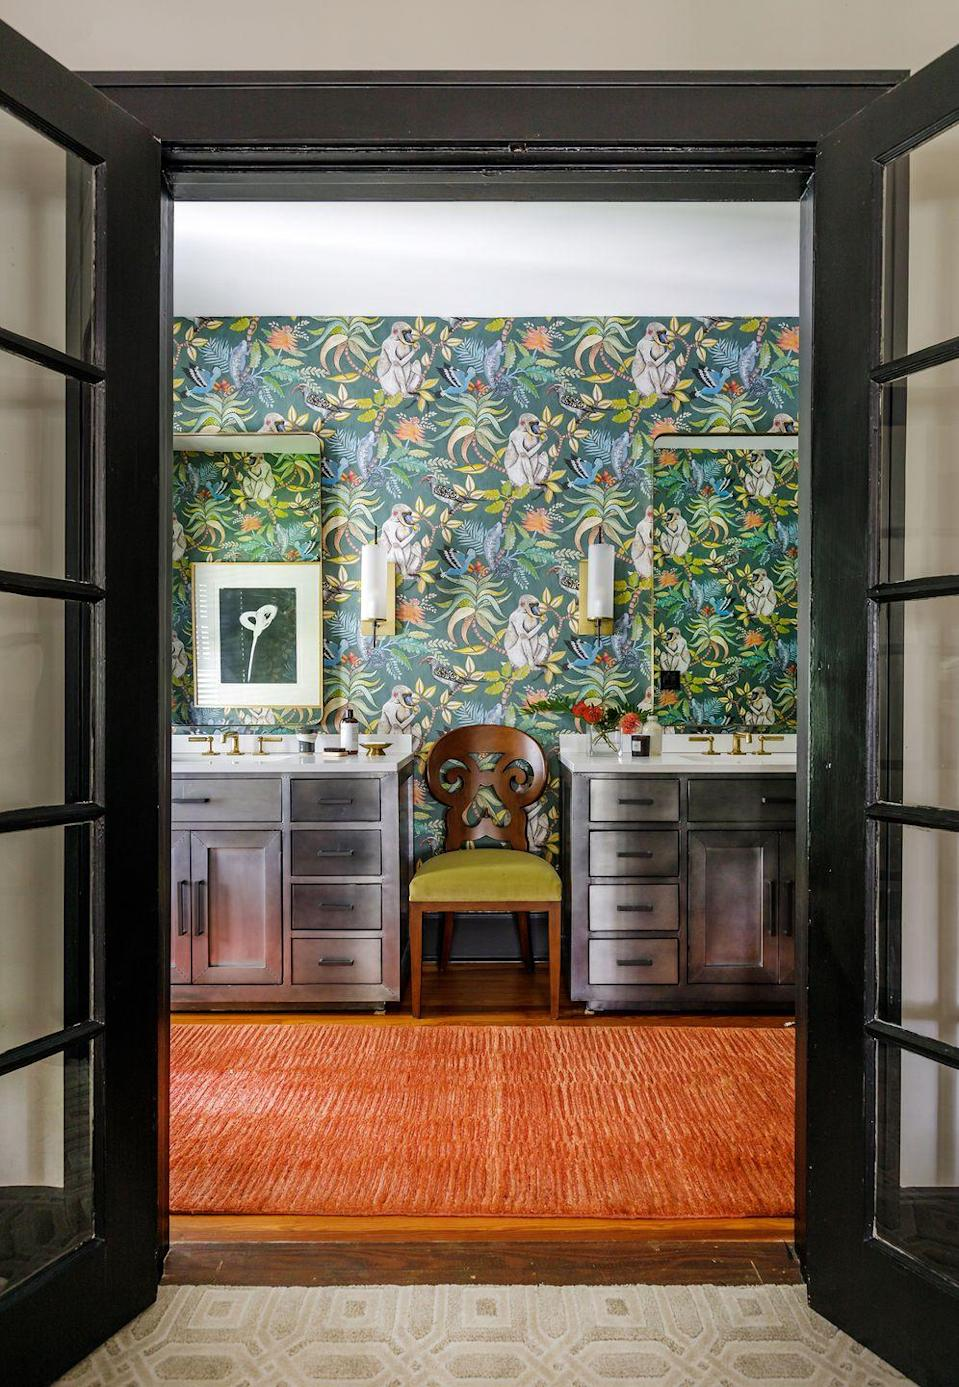 """<p>Every room in designer Fitz Pullins's Florida home is bursting with fun, including this bathroom with cheeky monkey-print wallpaper. """"What's more invigorating than a jungle?"""" Pullins says. """"Waking up, brushing your teeth—I want it to be entertaining for me.""""</p>"""